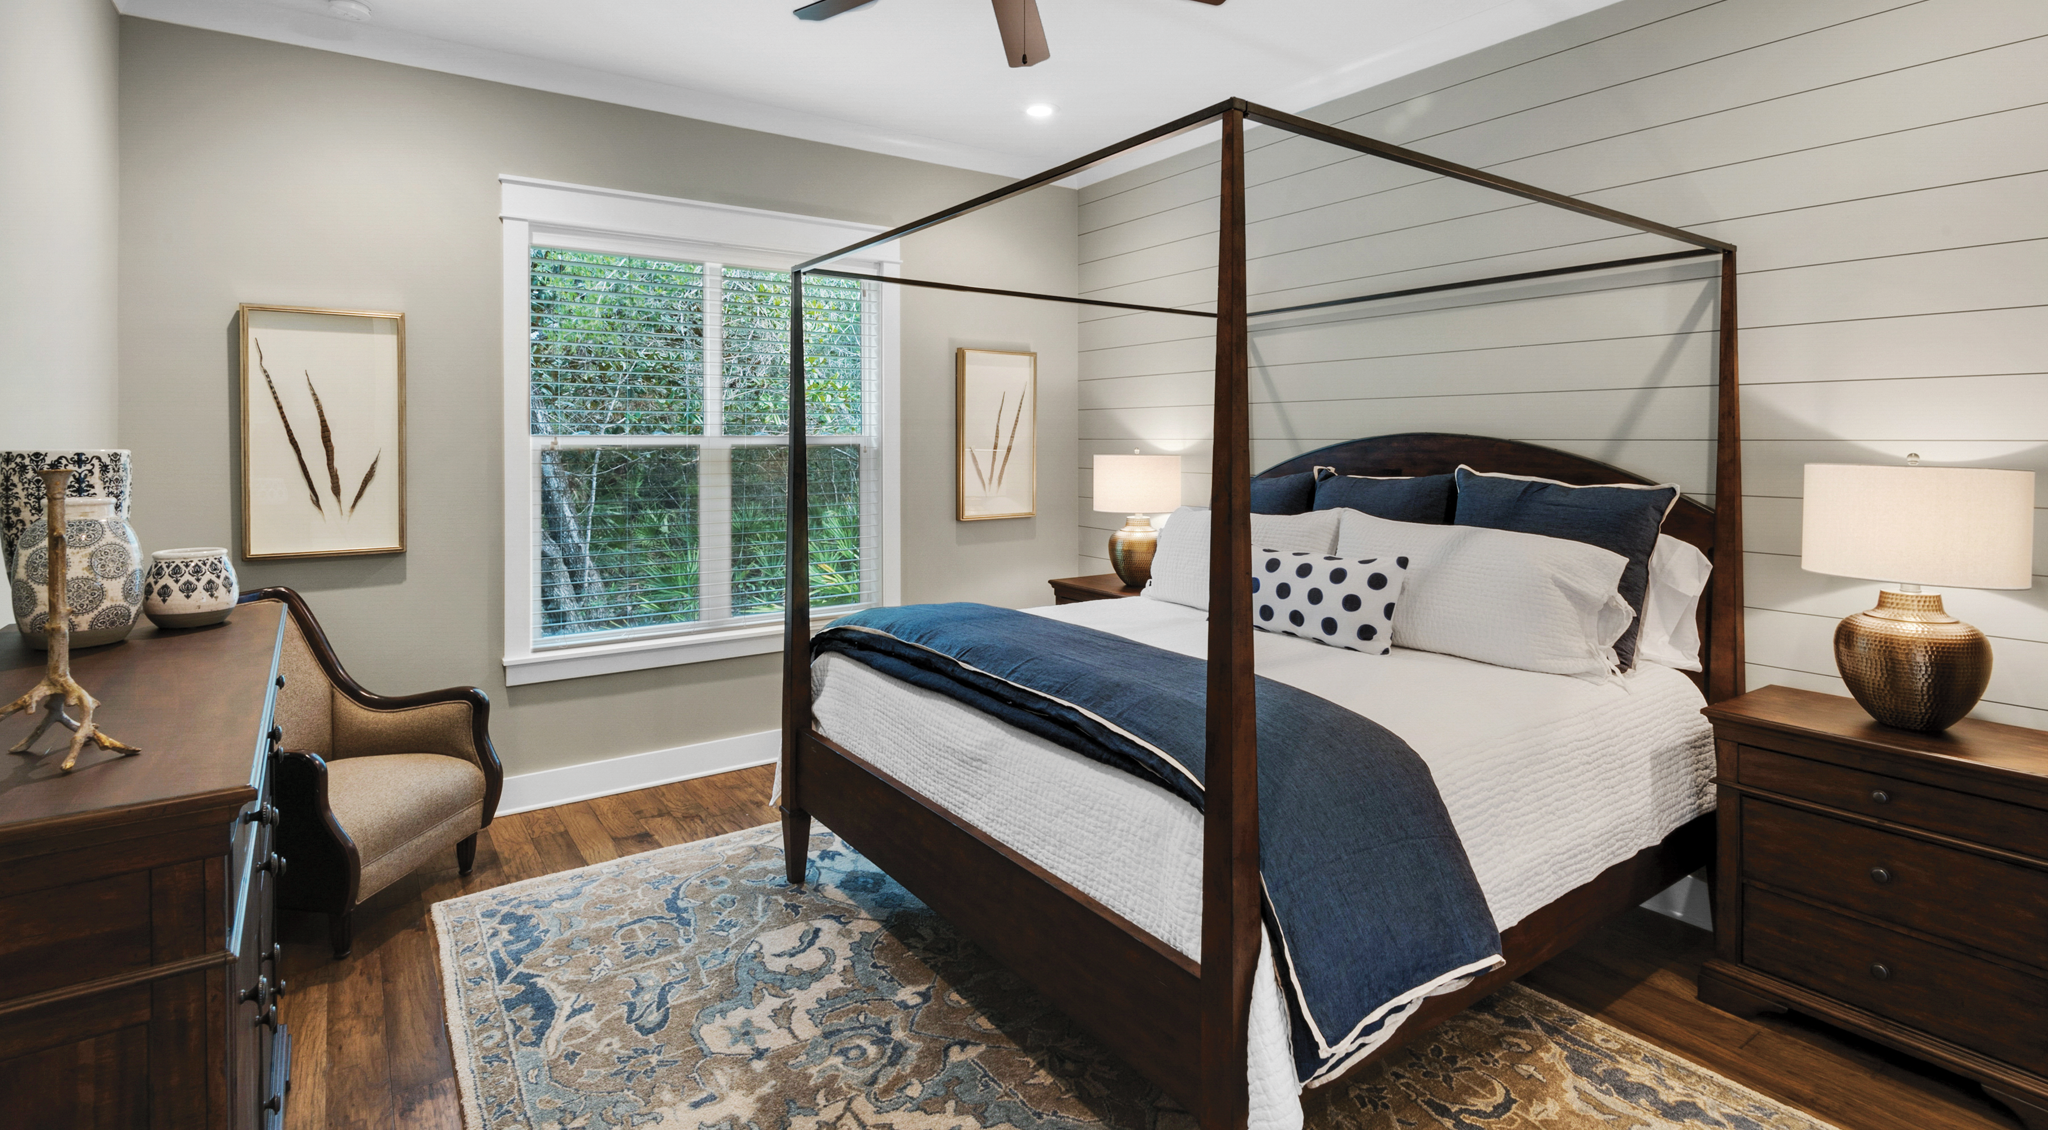 Bedroom of a house in Water's Edge